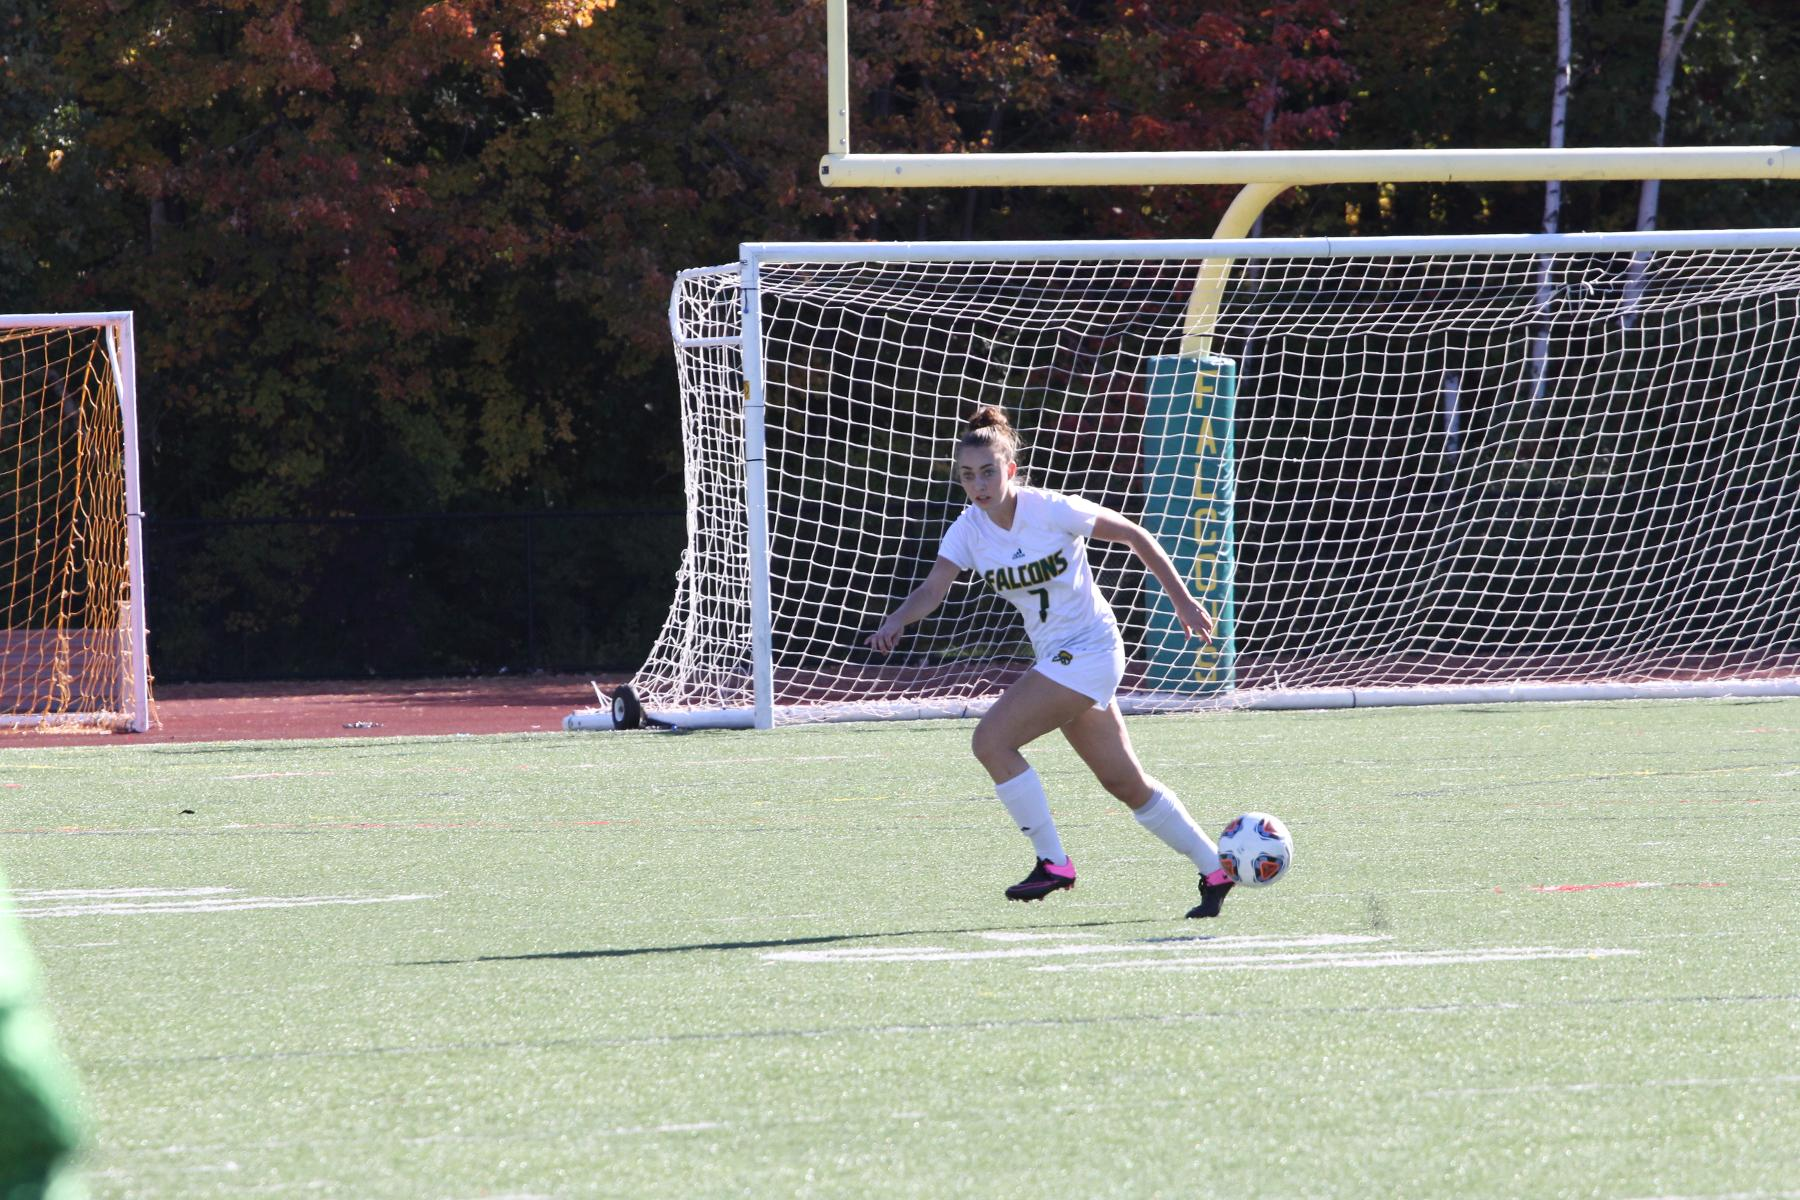 Fitchburg State Withstands MCLA, 2-1